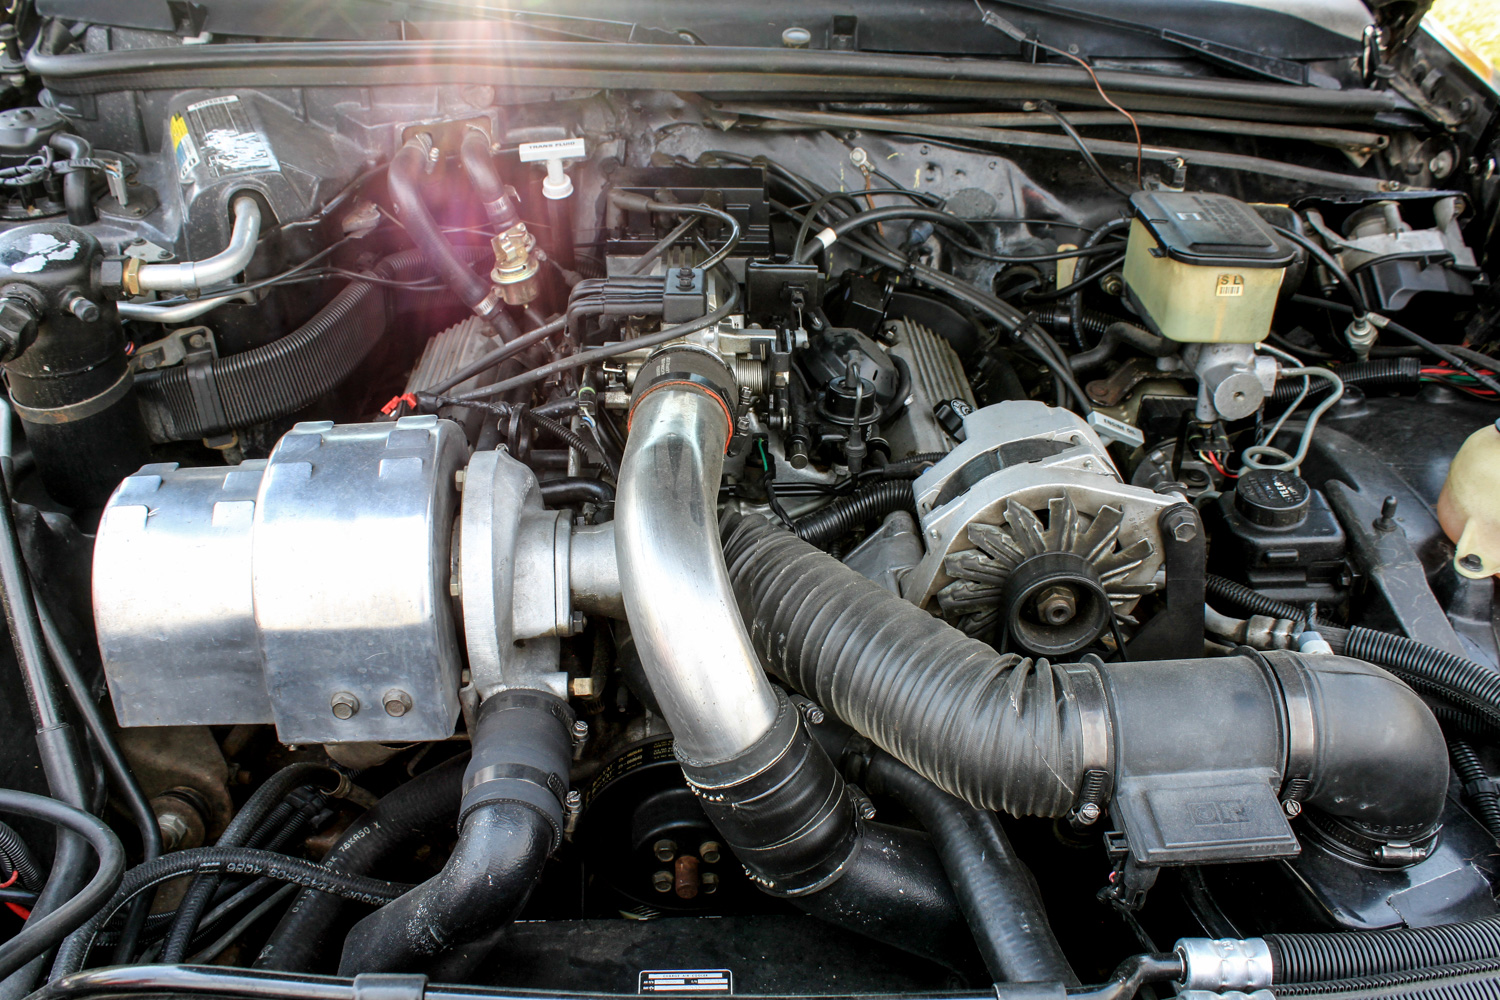 1987 Buick turbo-T engine